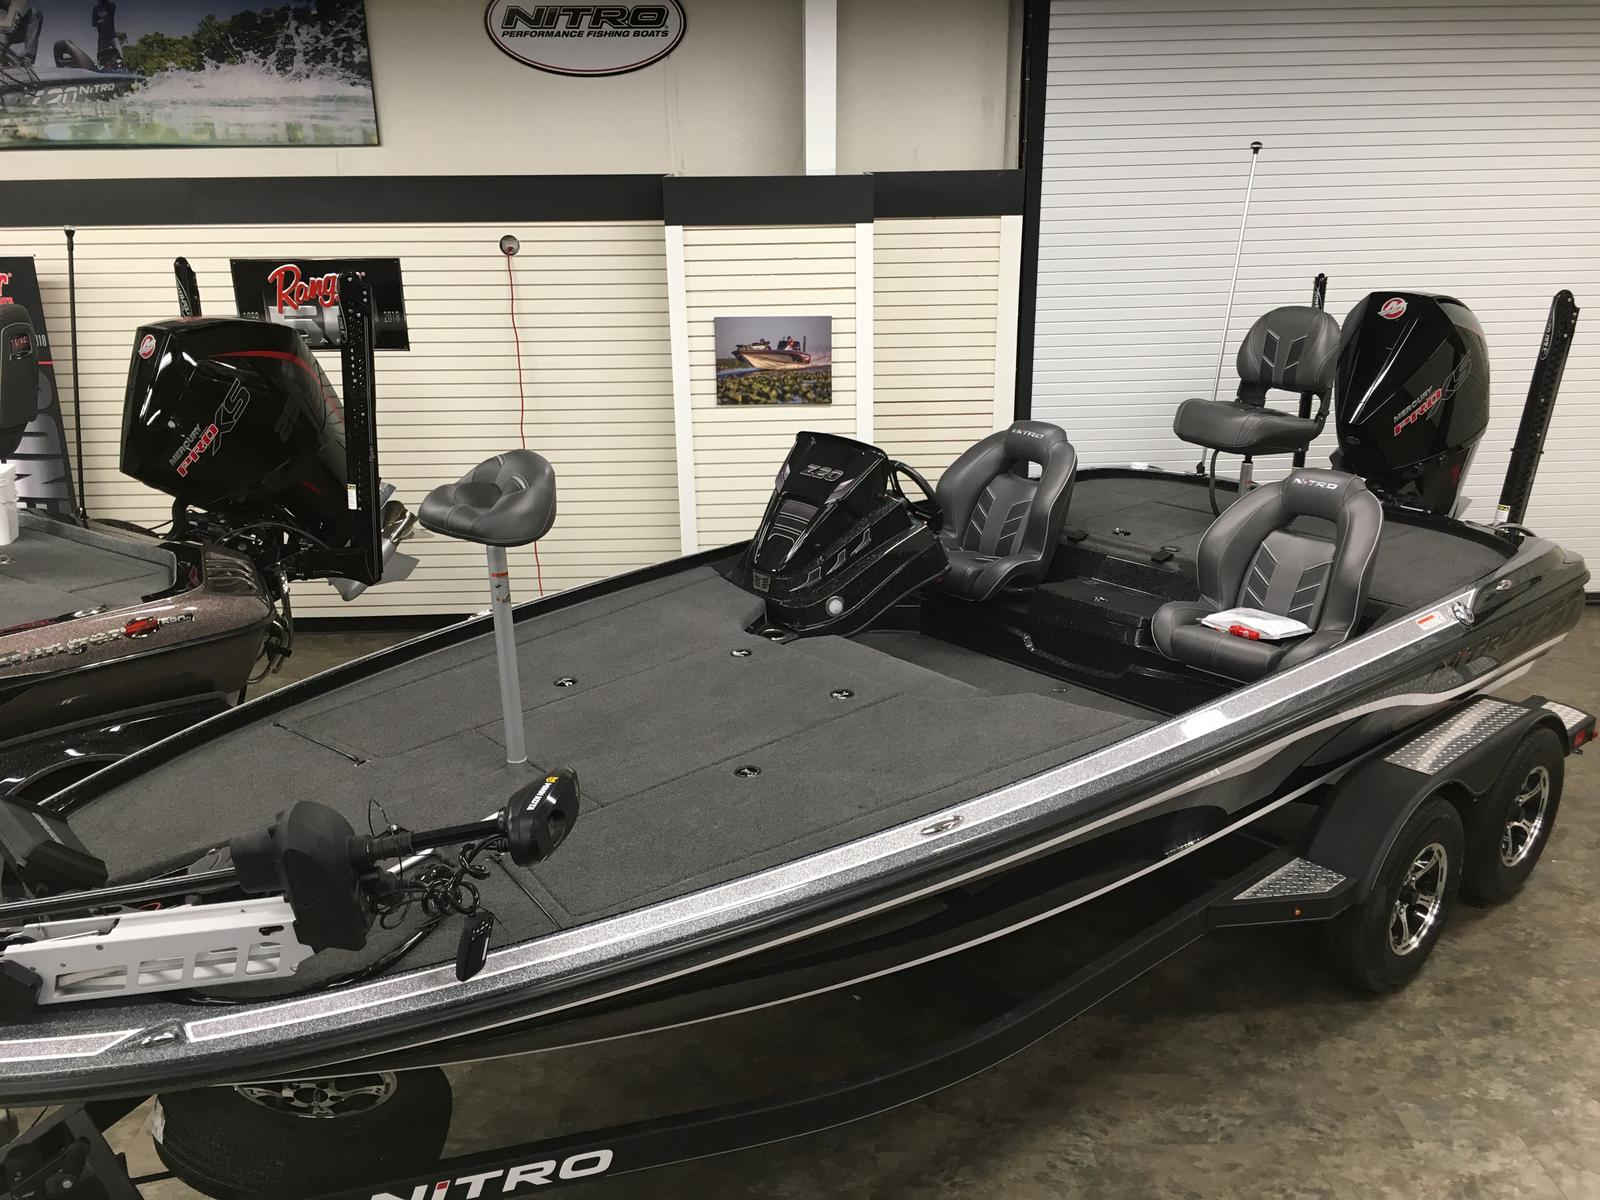 2020 Nitro boat for sale, model of the boat is Z20 PRO PACKAGE & Image # 8 of 8